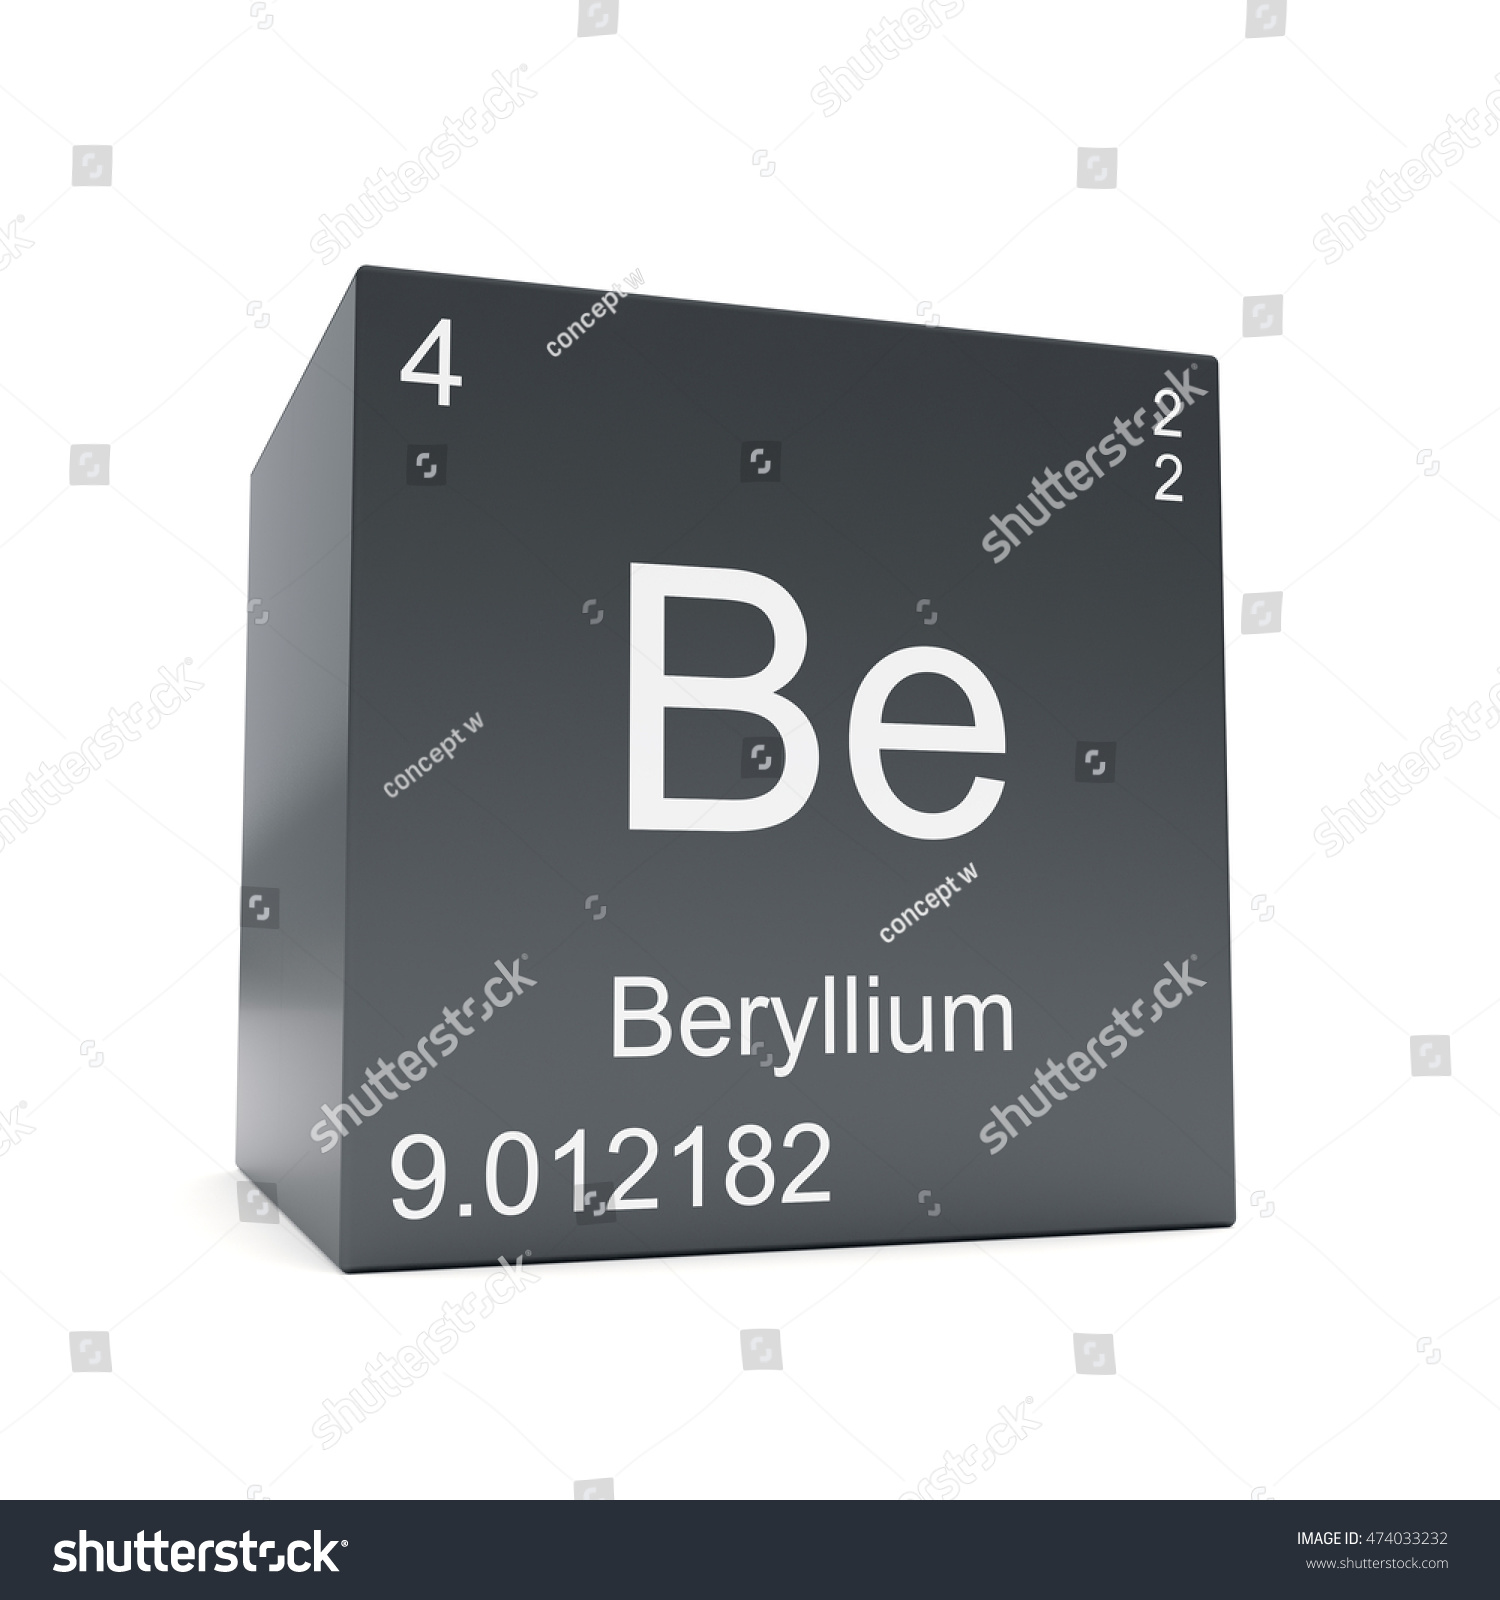 Beryllium chemical element symbol periodic table stock beryllium chemical element symbol from the periodic table displayed on black cube 3d render buycottarizona Image collections